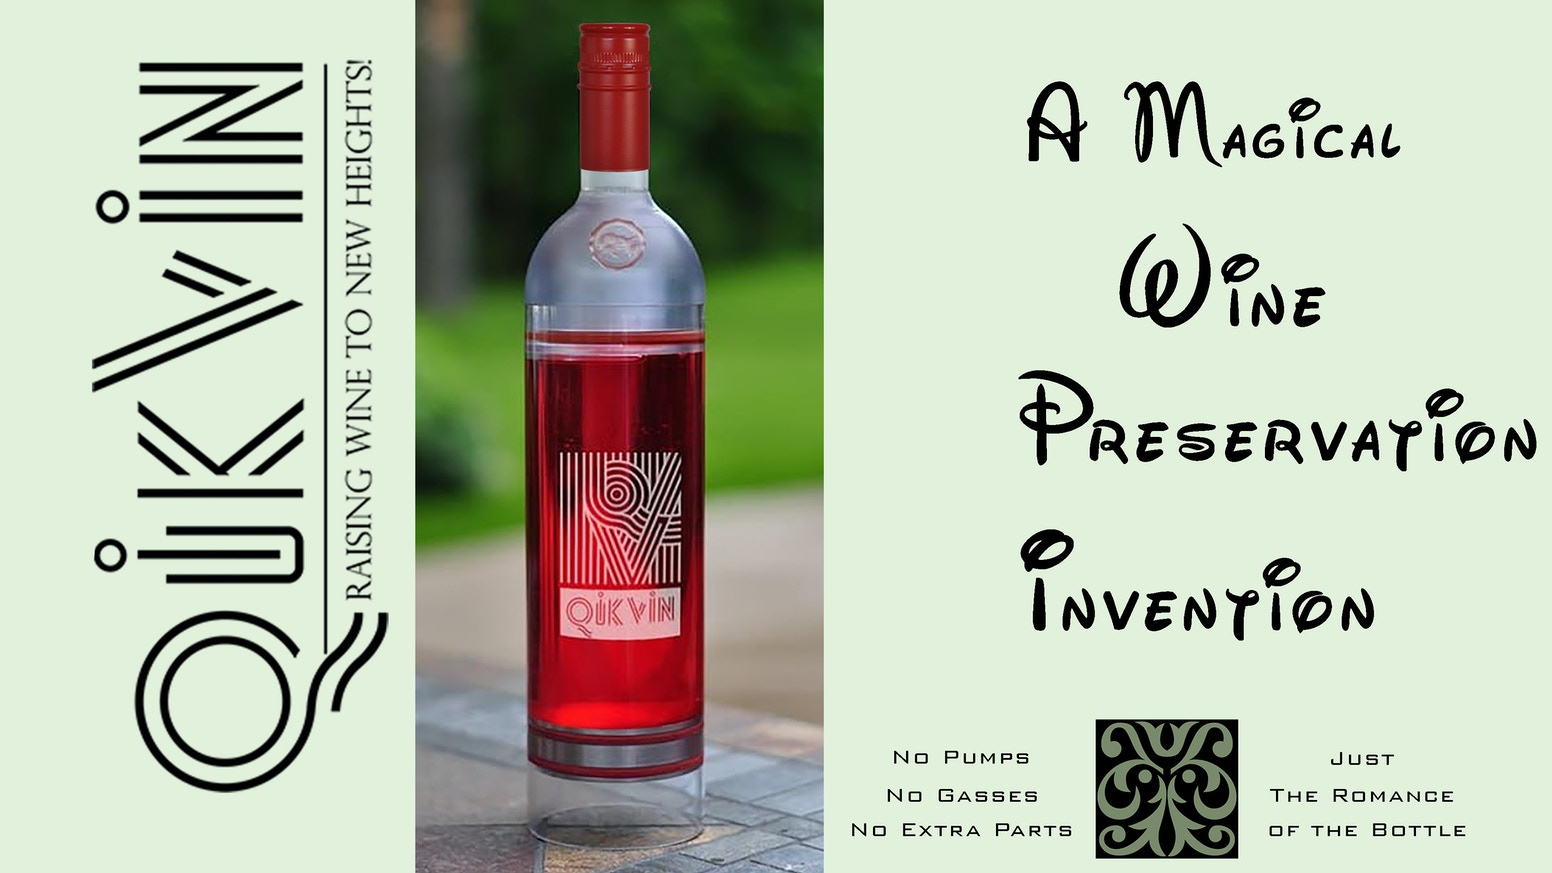 Use our Revolutionary New Reusable Wine Bottle to push air out of the bottle and preserve wine for hours, days or weeks!